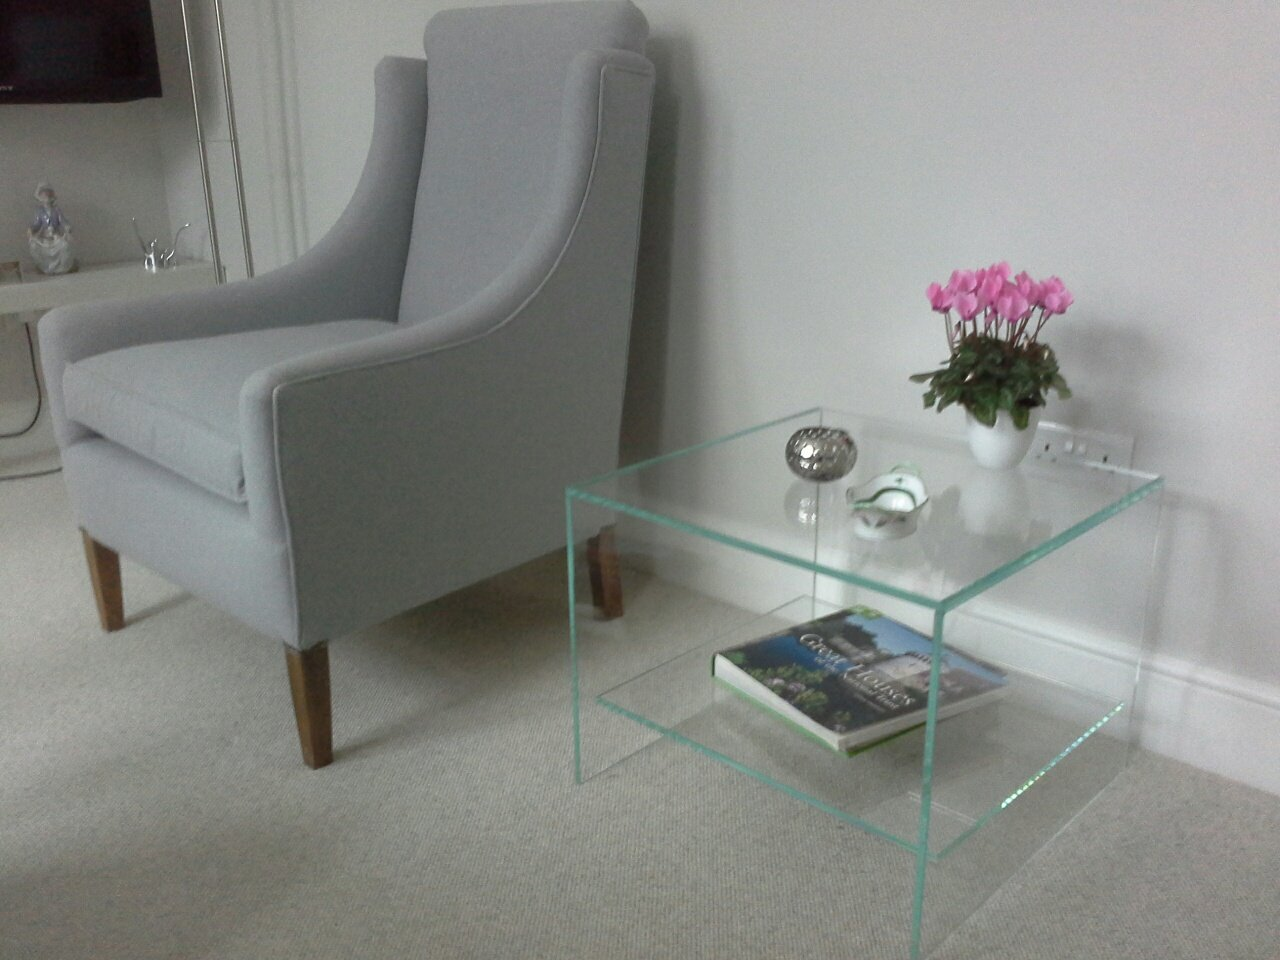 Judd glass side table